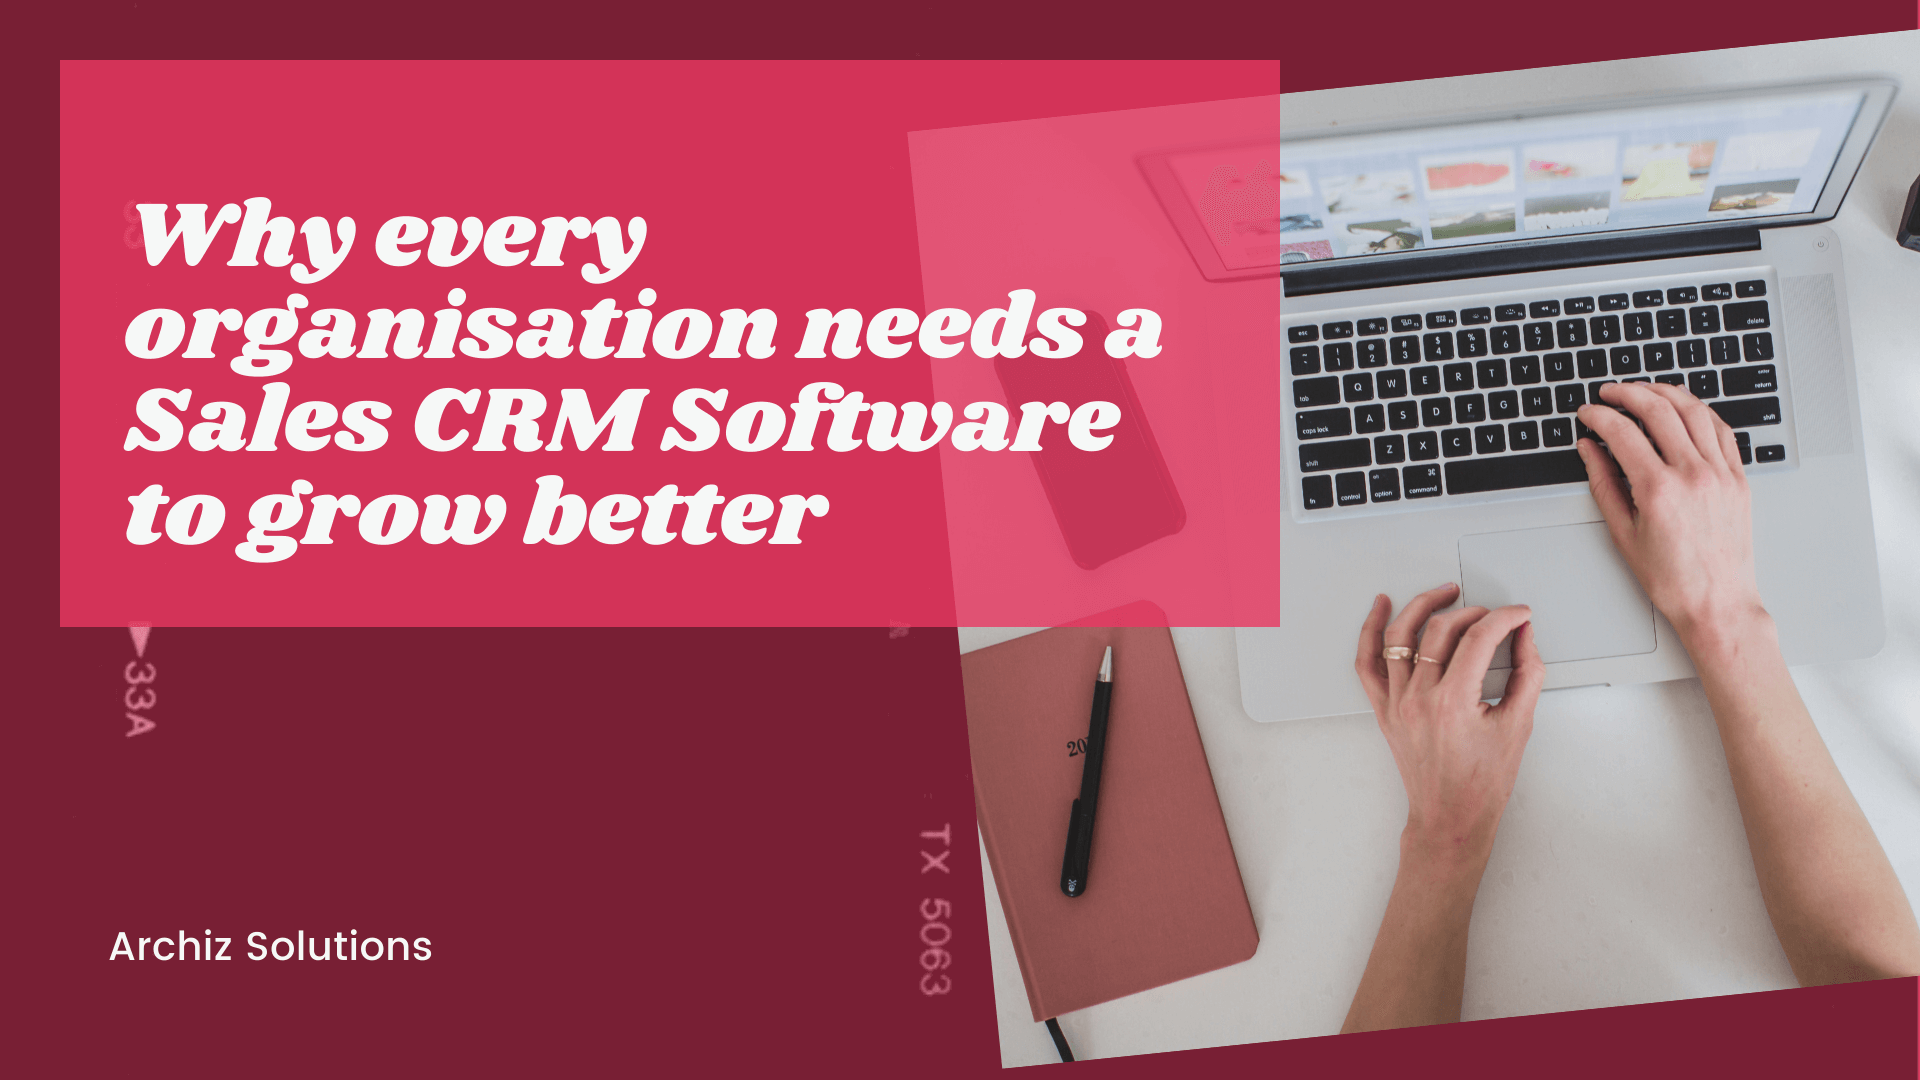 Why every organisation needs a Sales CRM Software to grow better (1)